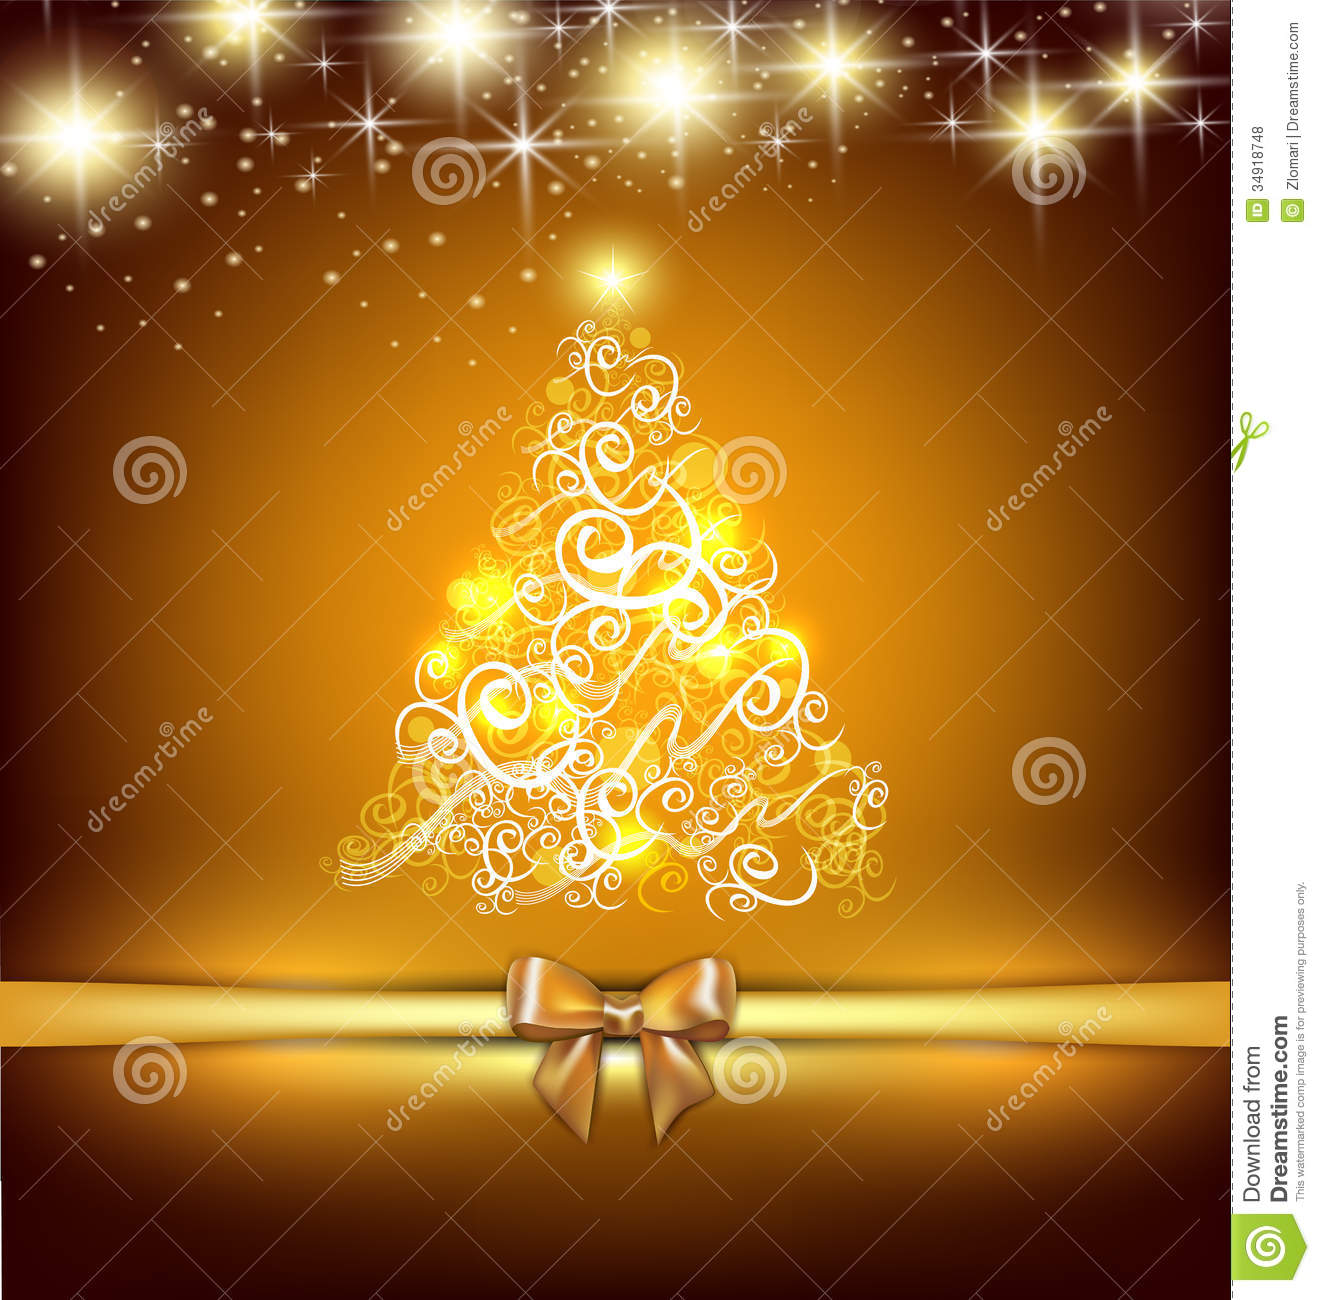 christmas gold background golden - photo #31